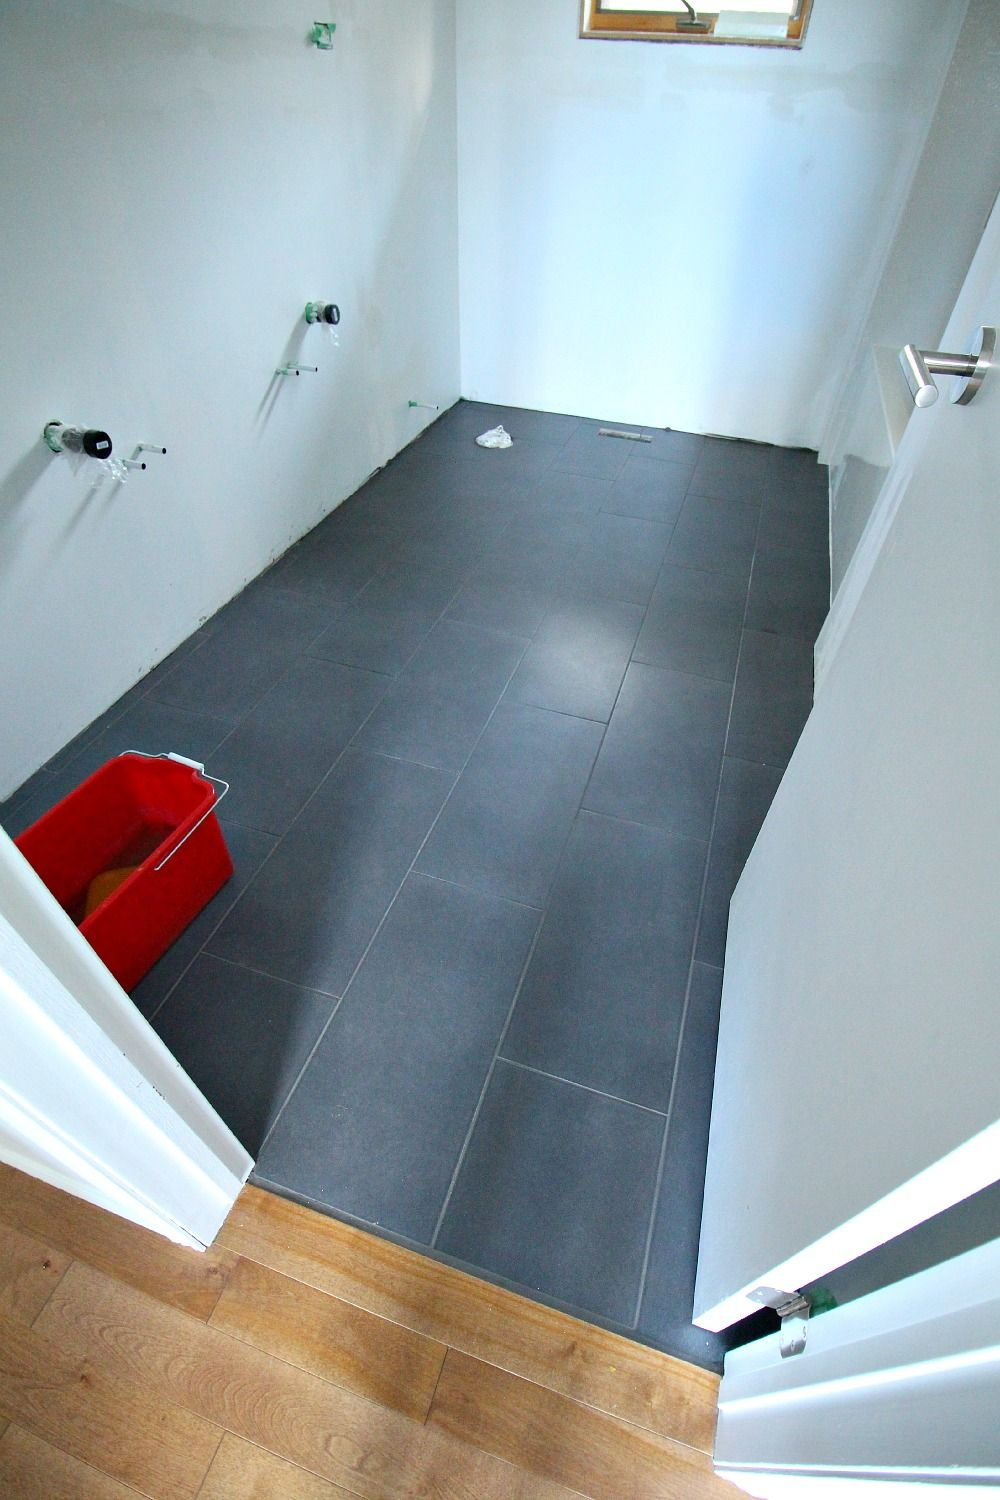 Charcoal grey large rectangular bathroom floor tile with dark charcoal grey large rectangular bathroom floor tile with dark grout see the tiling process so dailygadgetfo Images